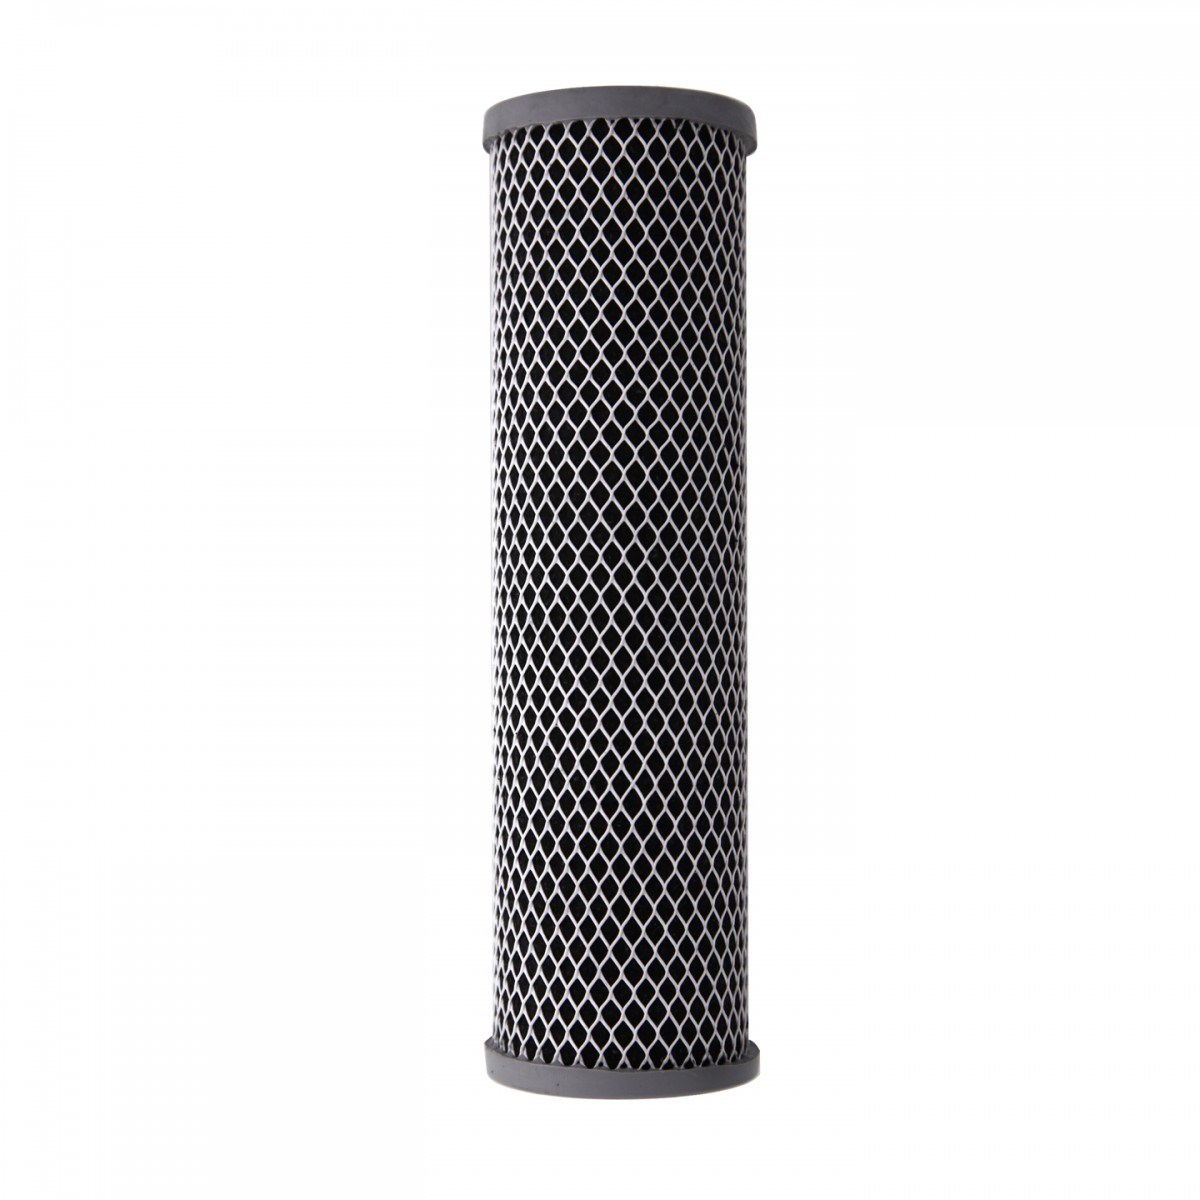 hac 10 w harmsco activated carbon water filter cartridge. Black Bedroom Furniture Sets. Home Design Ideas